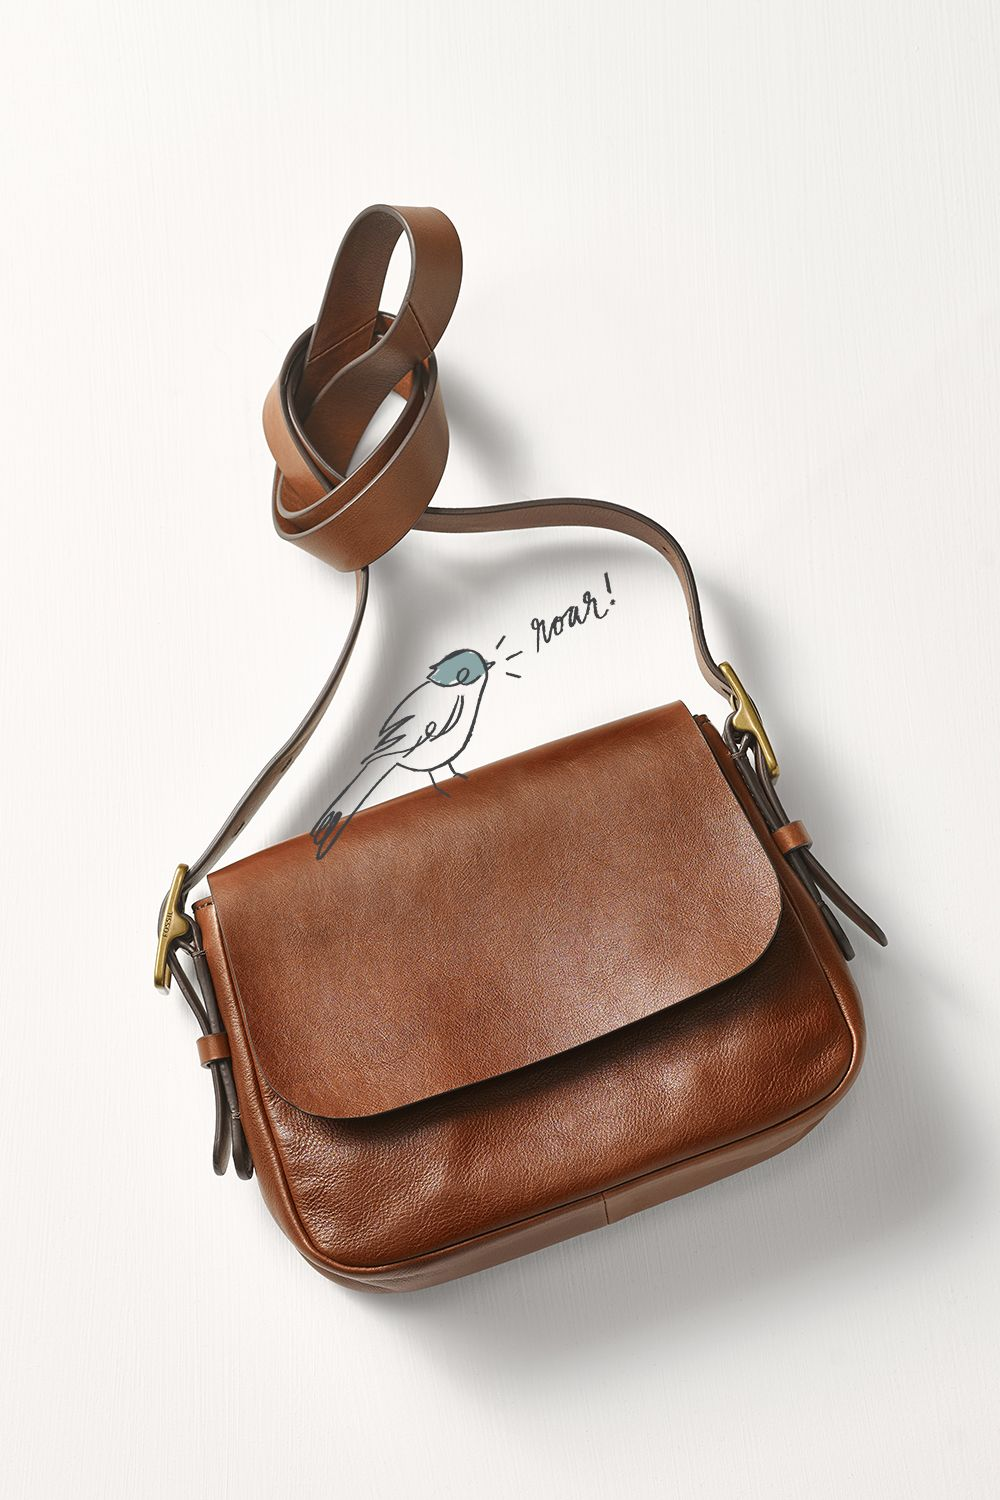 A Leather Crossbody You And Your Mom